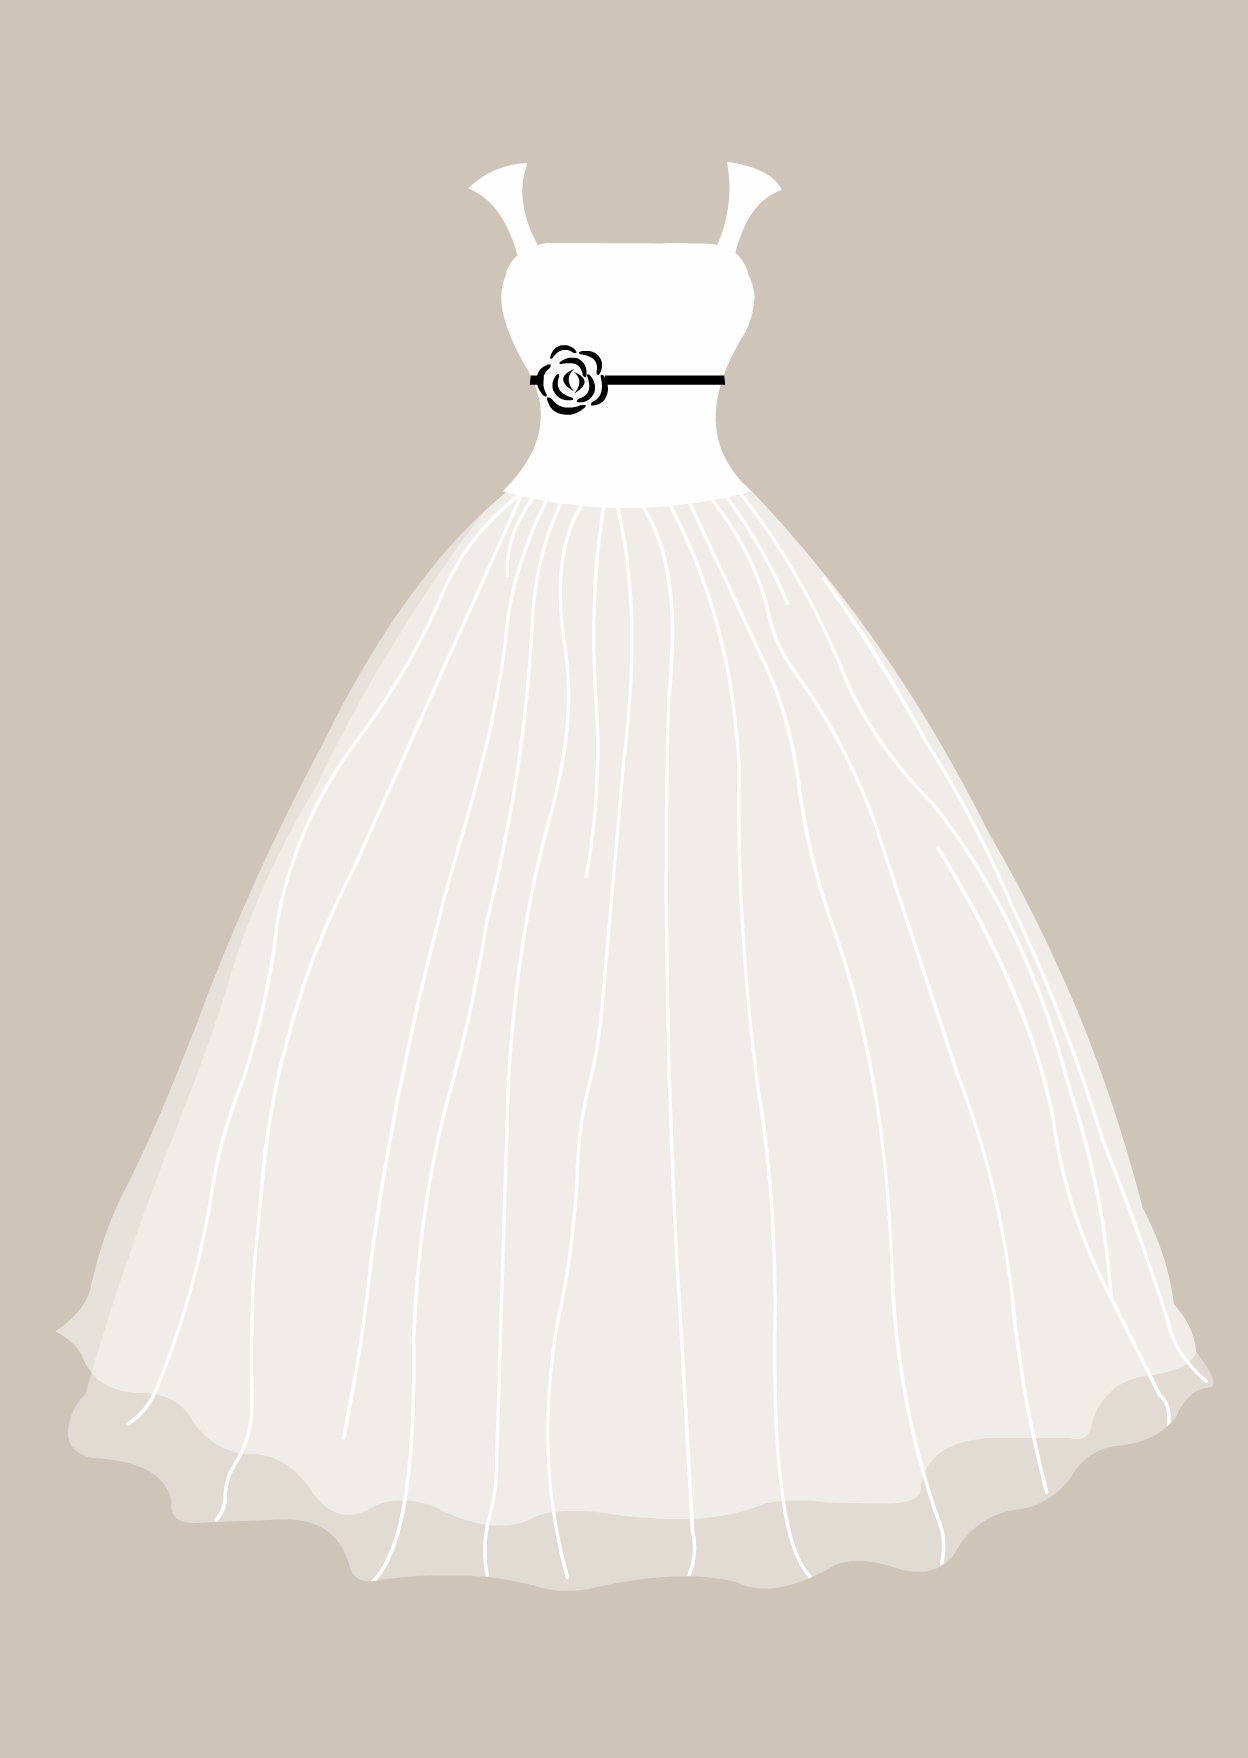 pin Dress clipart wedding dress #6 - Wedding Dress And Tux PNG